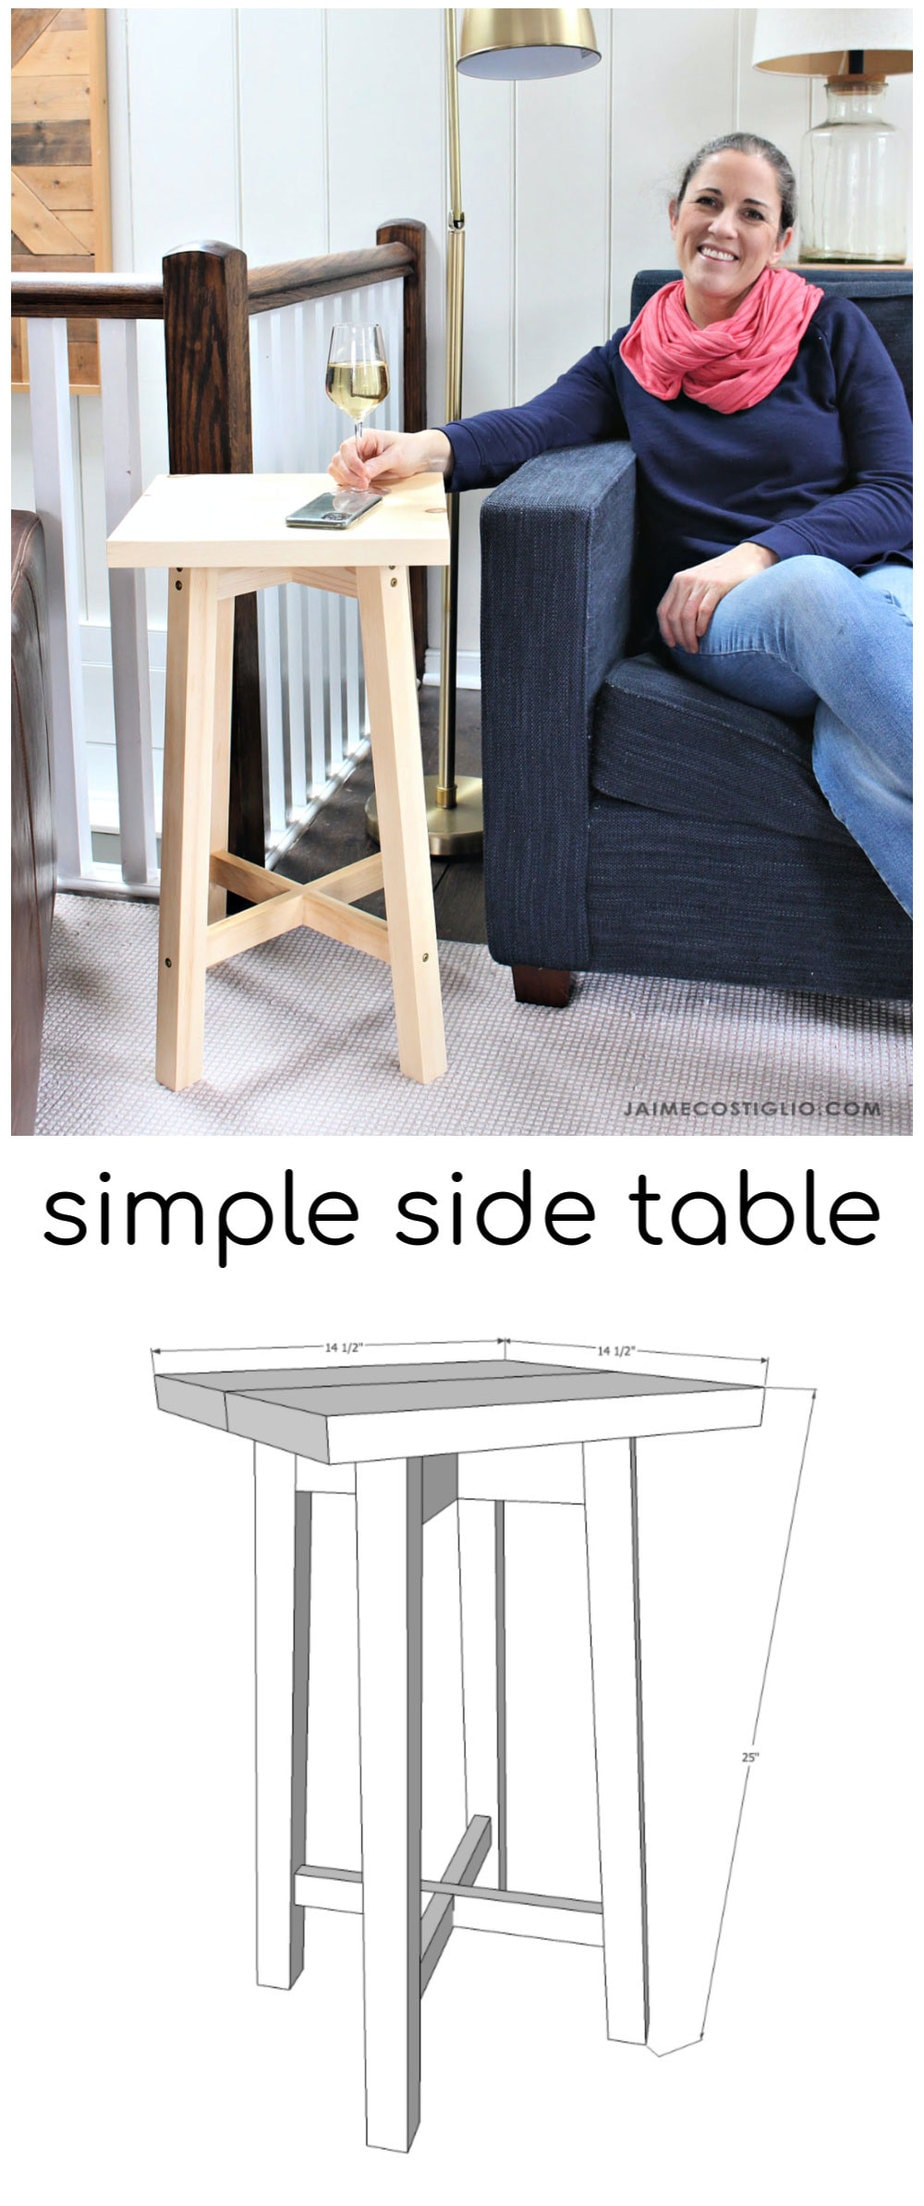 diy simple side table free plans